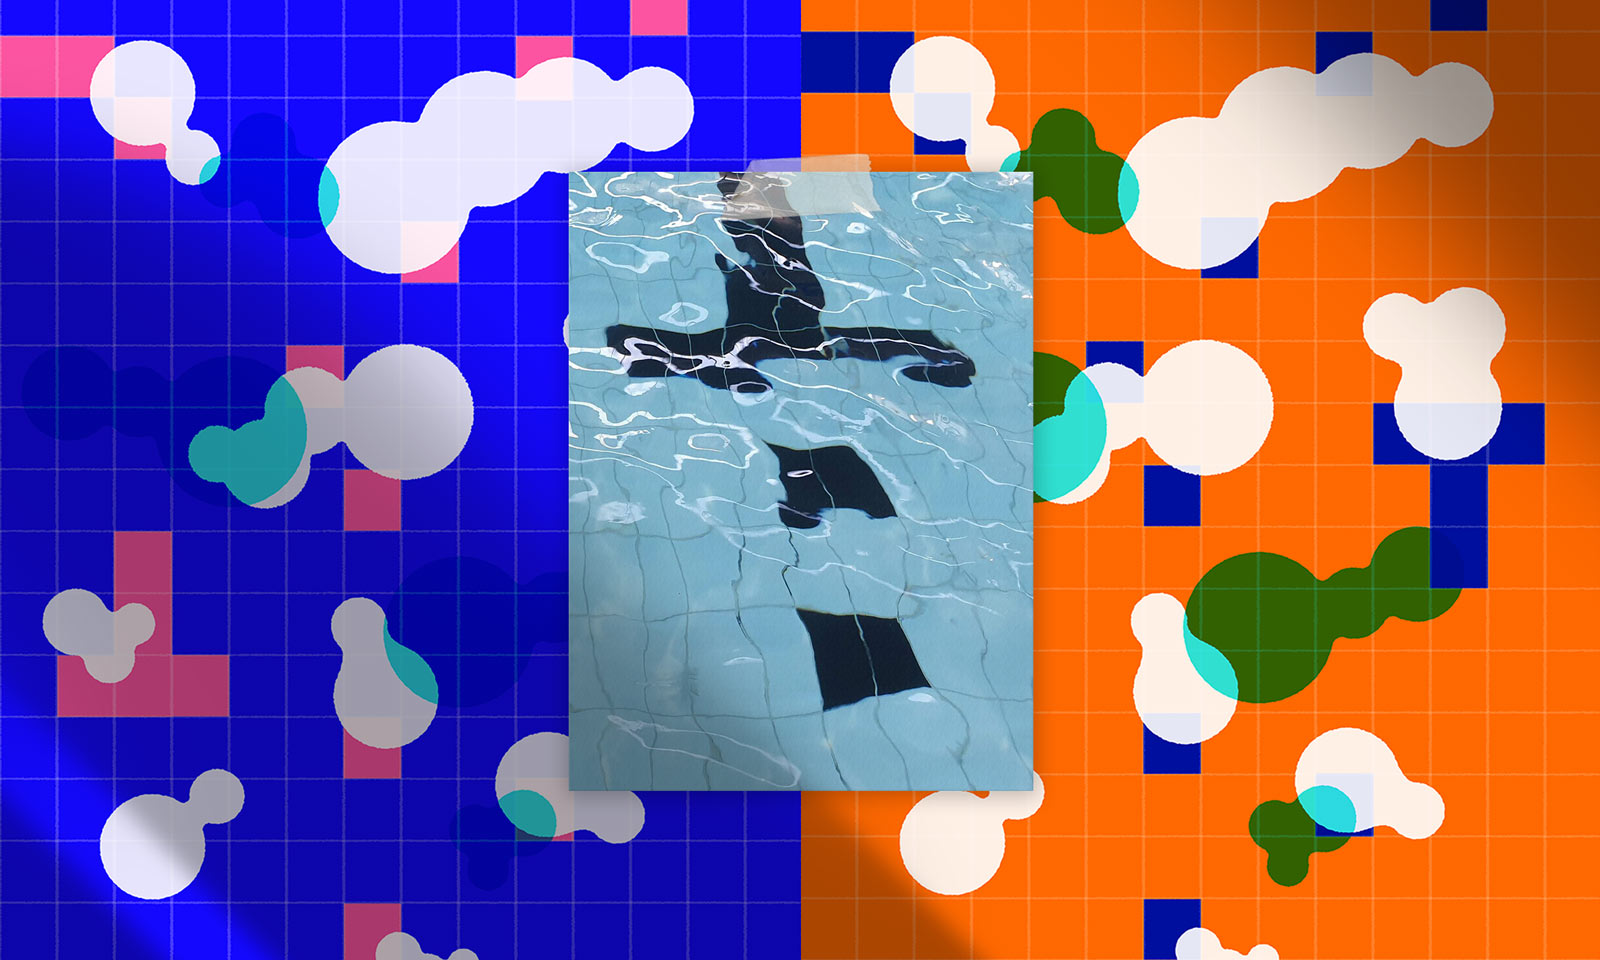 MAMIMU Hackney Swimming Pool Pattern & Inspiration